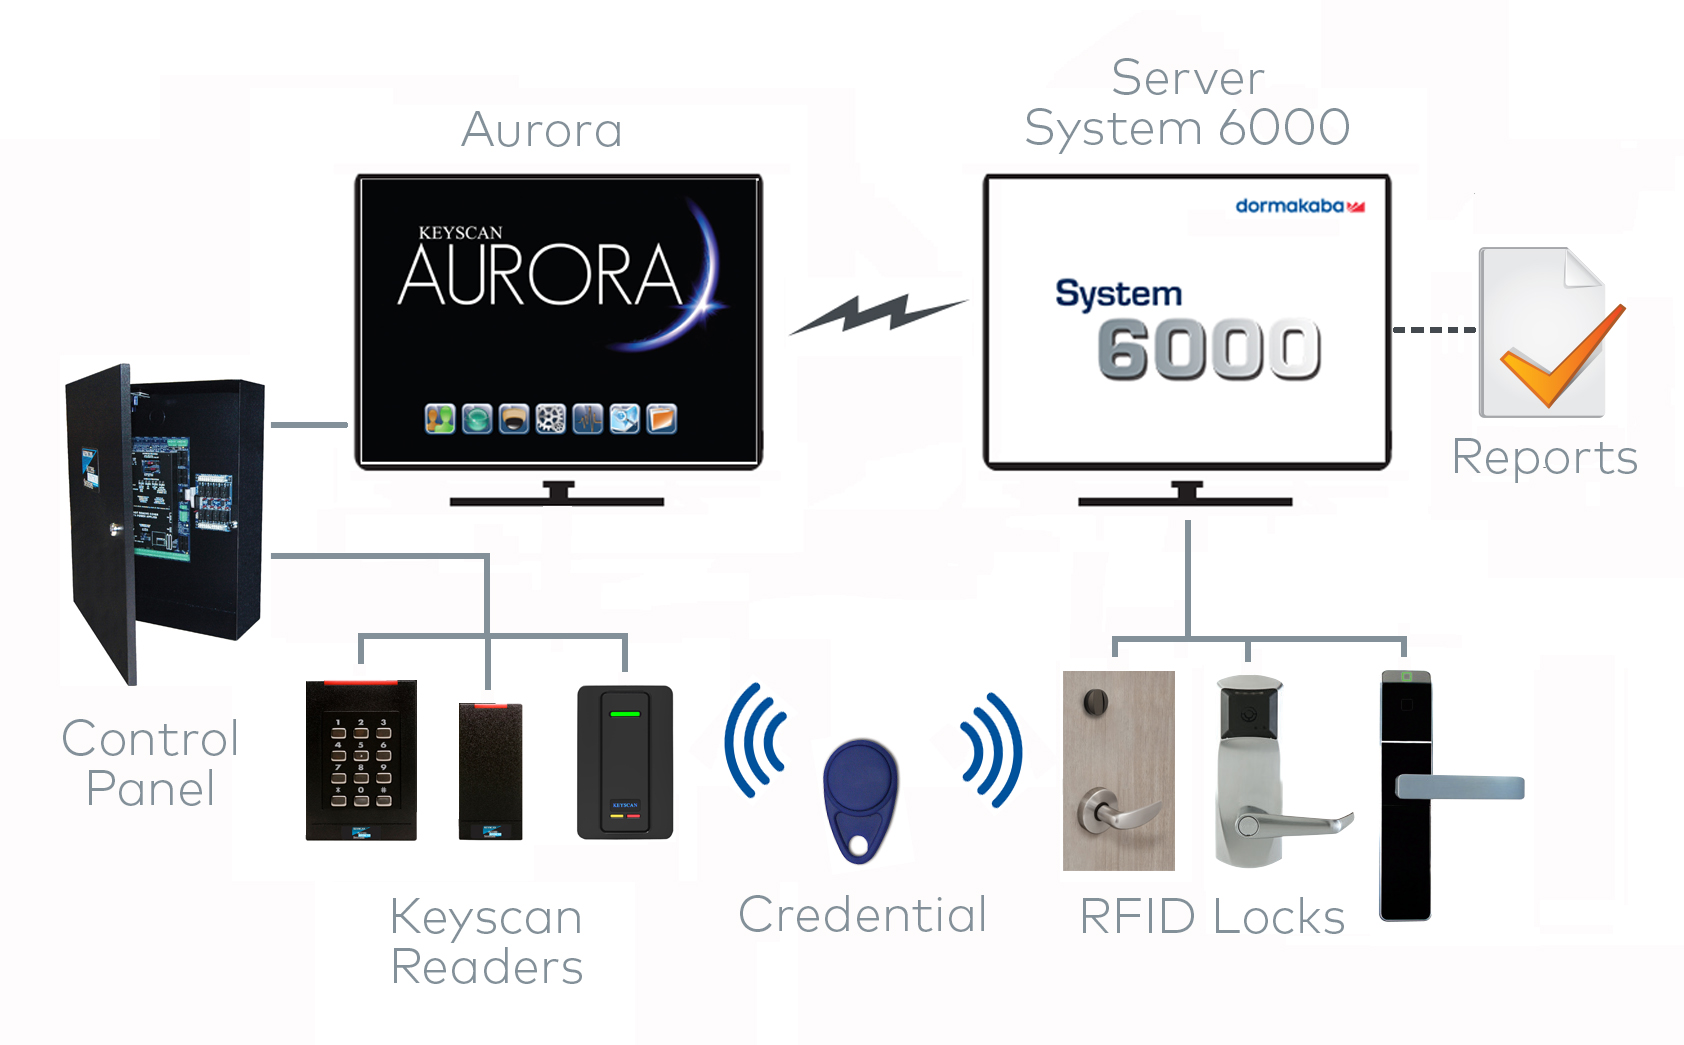 Keyscan Access Control Wiring Diagram Russound Dormakaba Announces Integration Of System 6000 And Aurora Can Software Keys